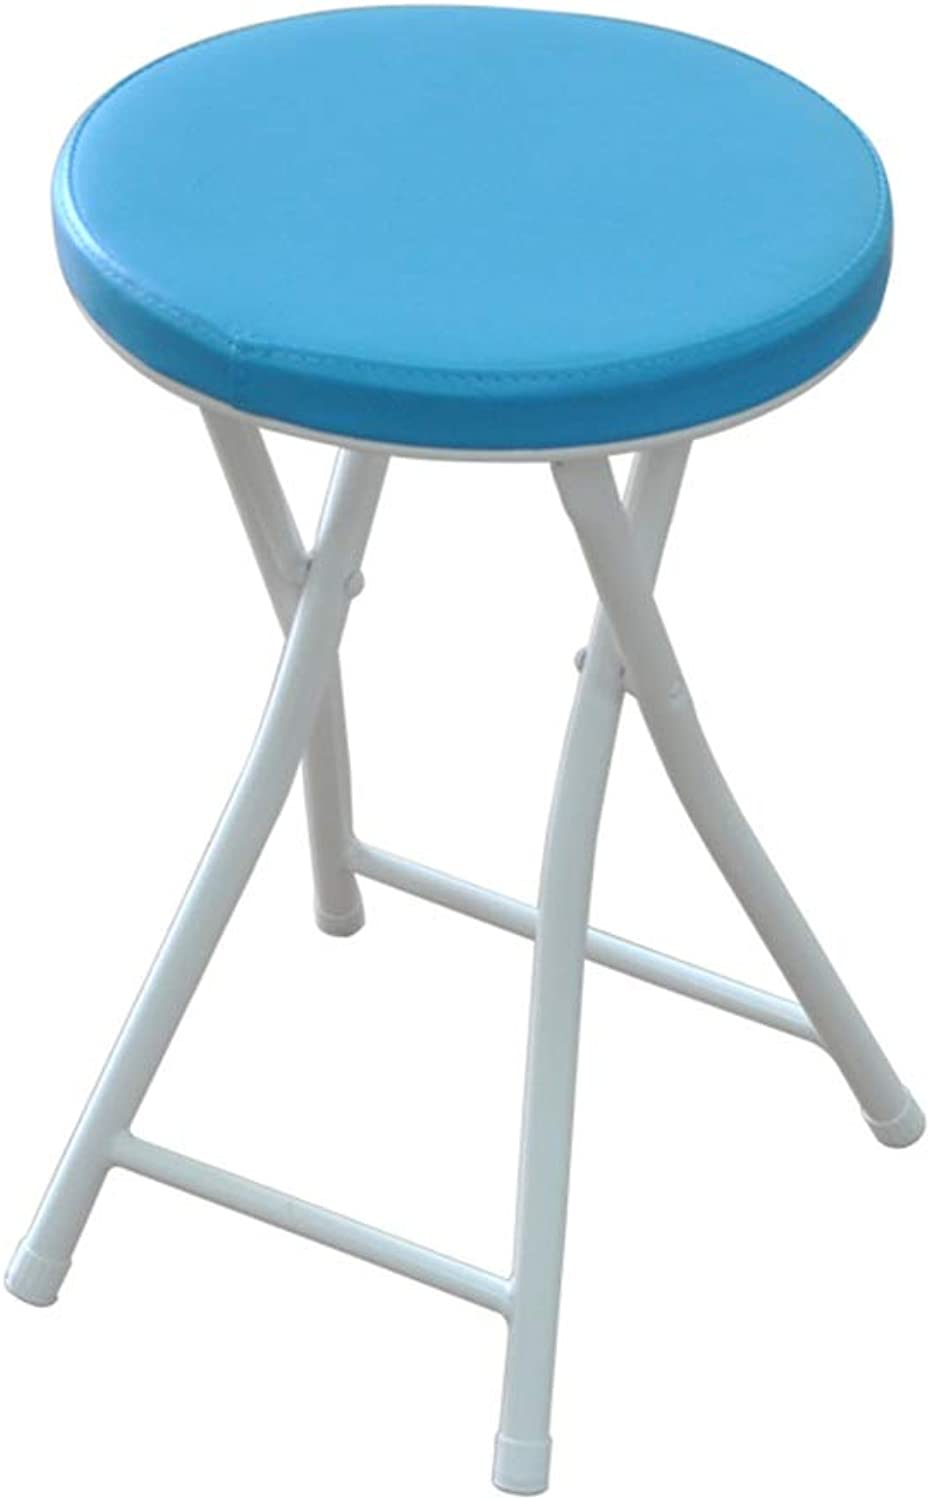 ZAHOYONGLI Chairs,Folding Chairs Padded Folding High Chair Round Breakfast Kitchen Bar Stool Furniture Compact High Chair (color   bluee is 50cm high)